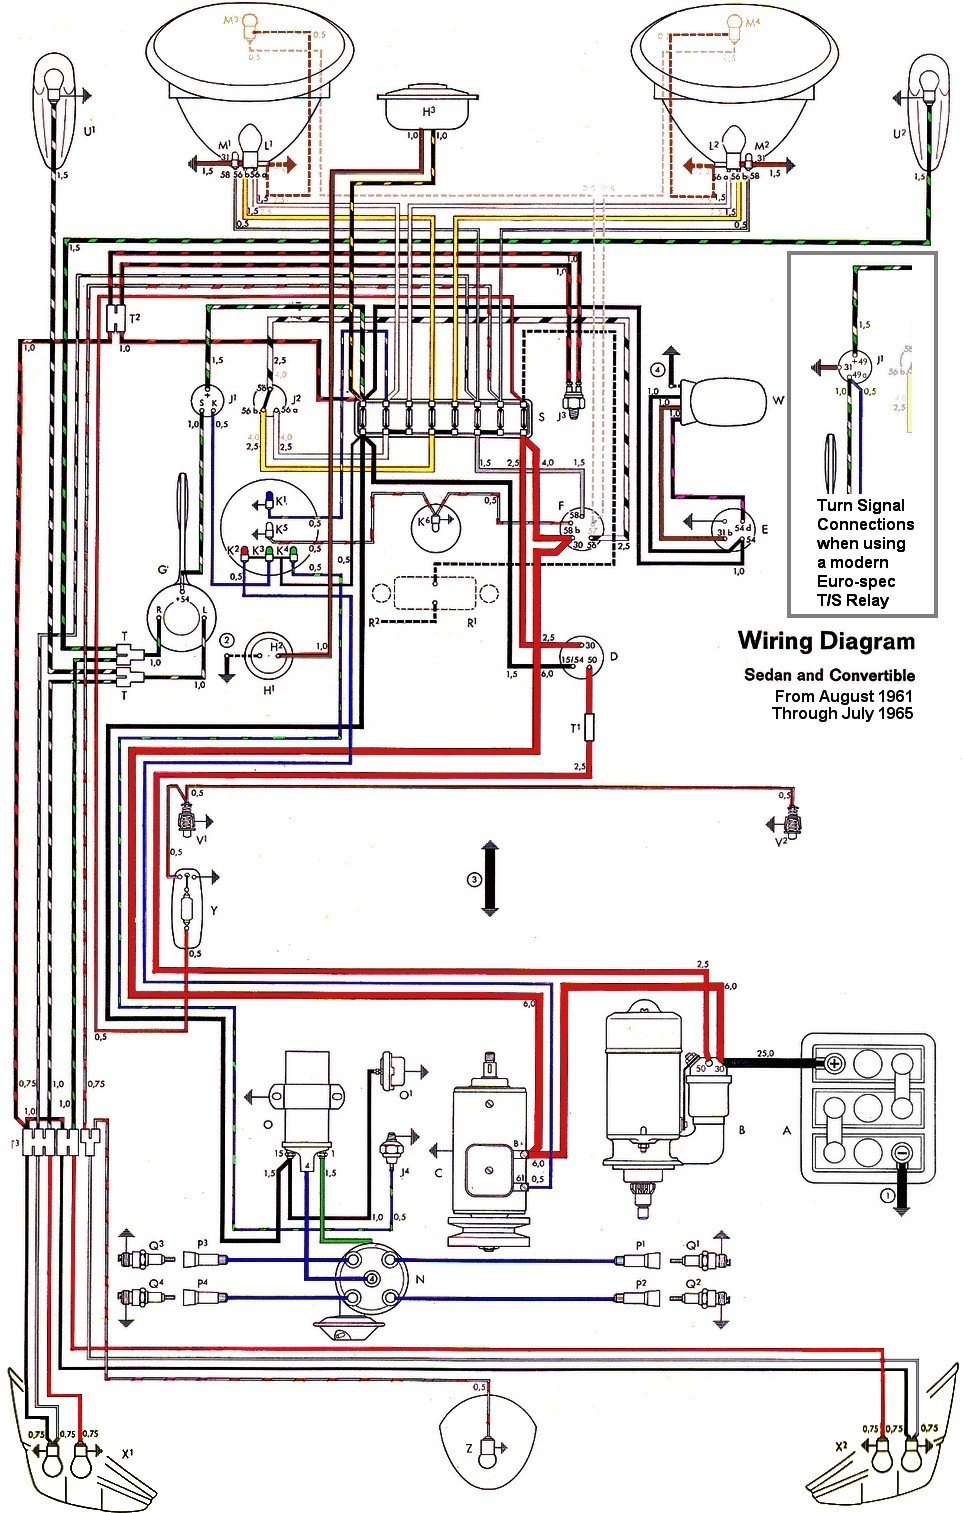 bug_62 65withinset thesamba com type 1 wiring diagrams vw beetle diagrams at virtualis.co